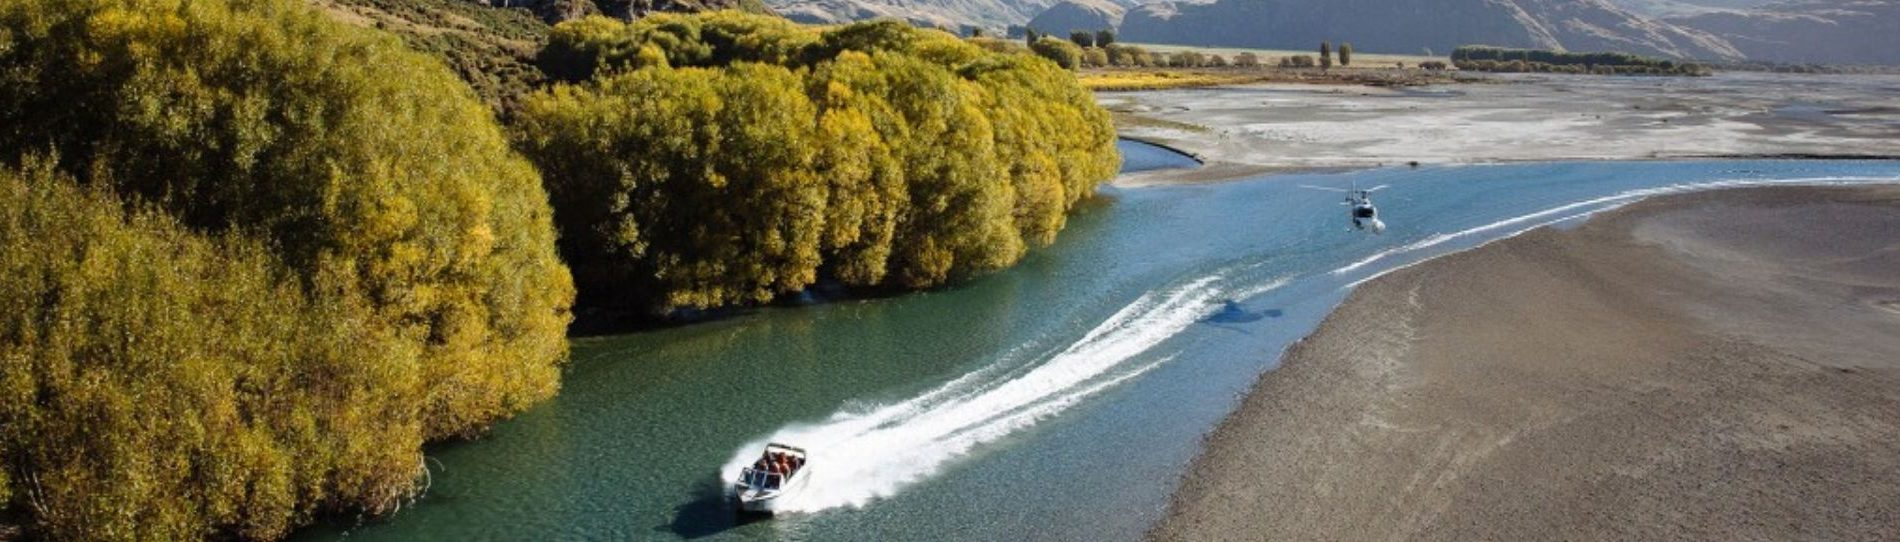 wanaka jet boating activity